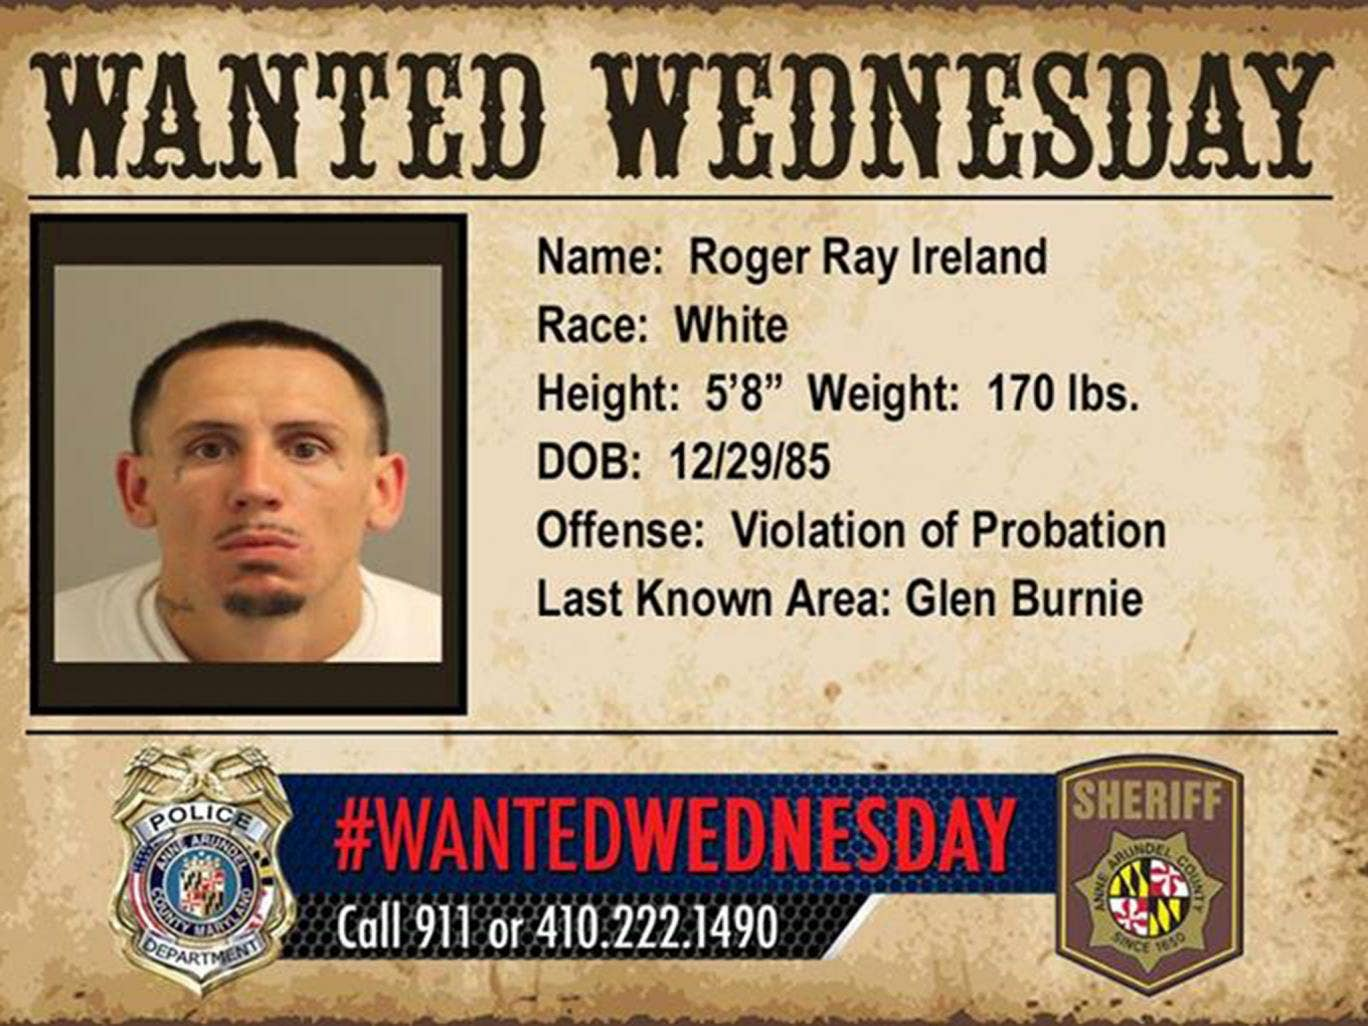 A 'Wanted Wednesday' poster by Anne Arundel County Police Department showing Roger Ray Ireland